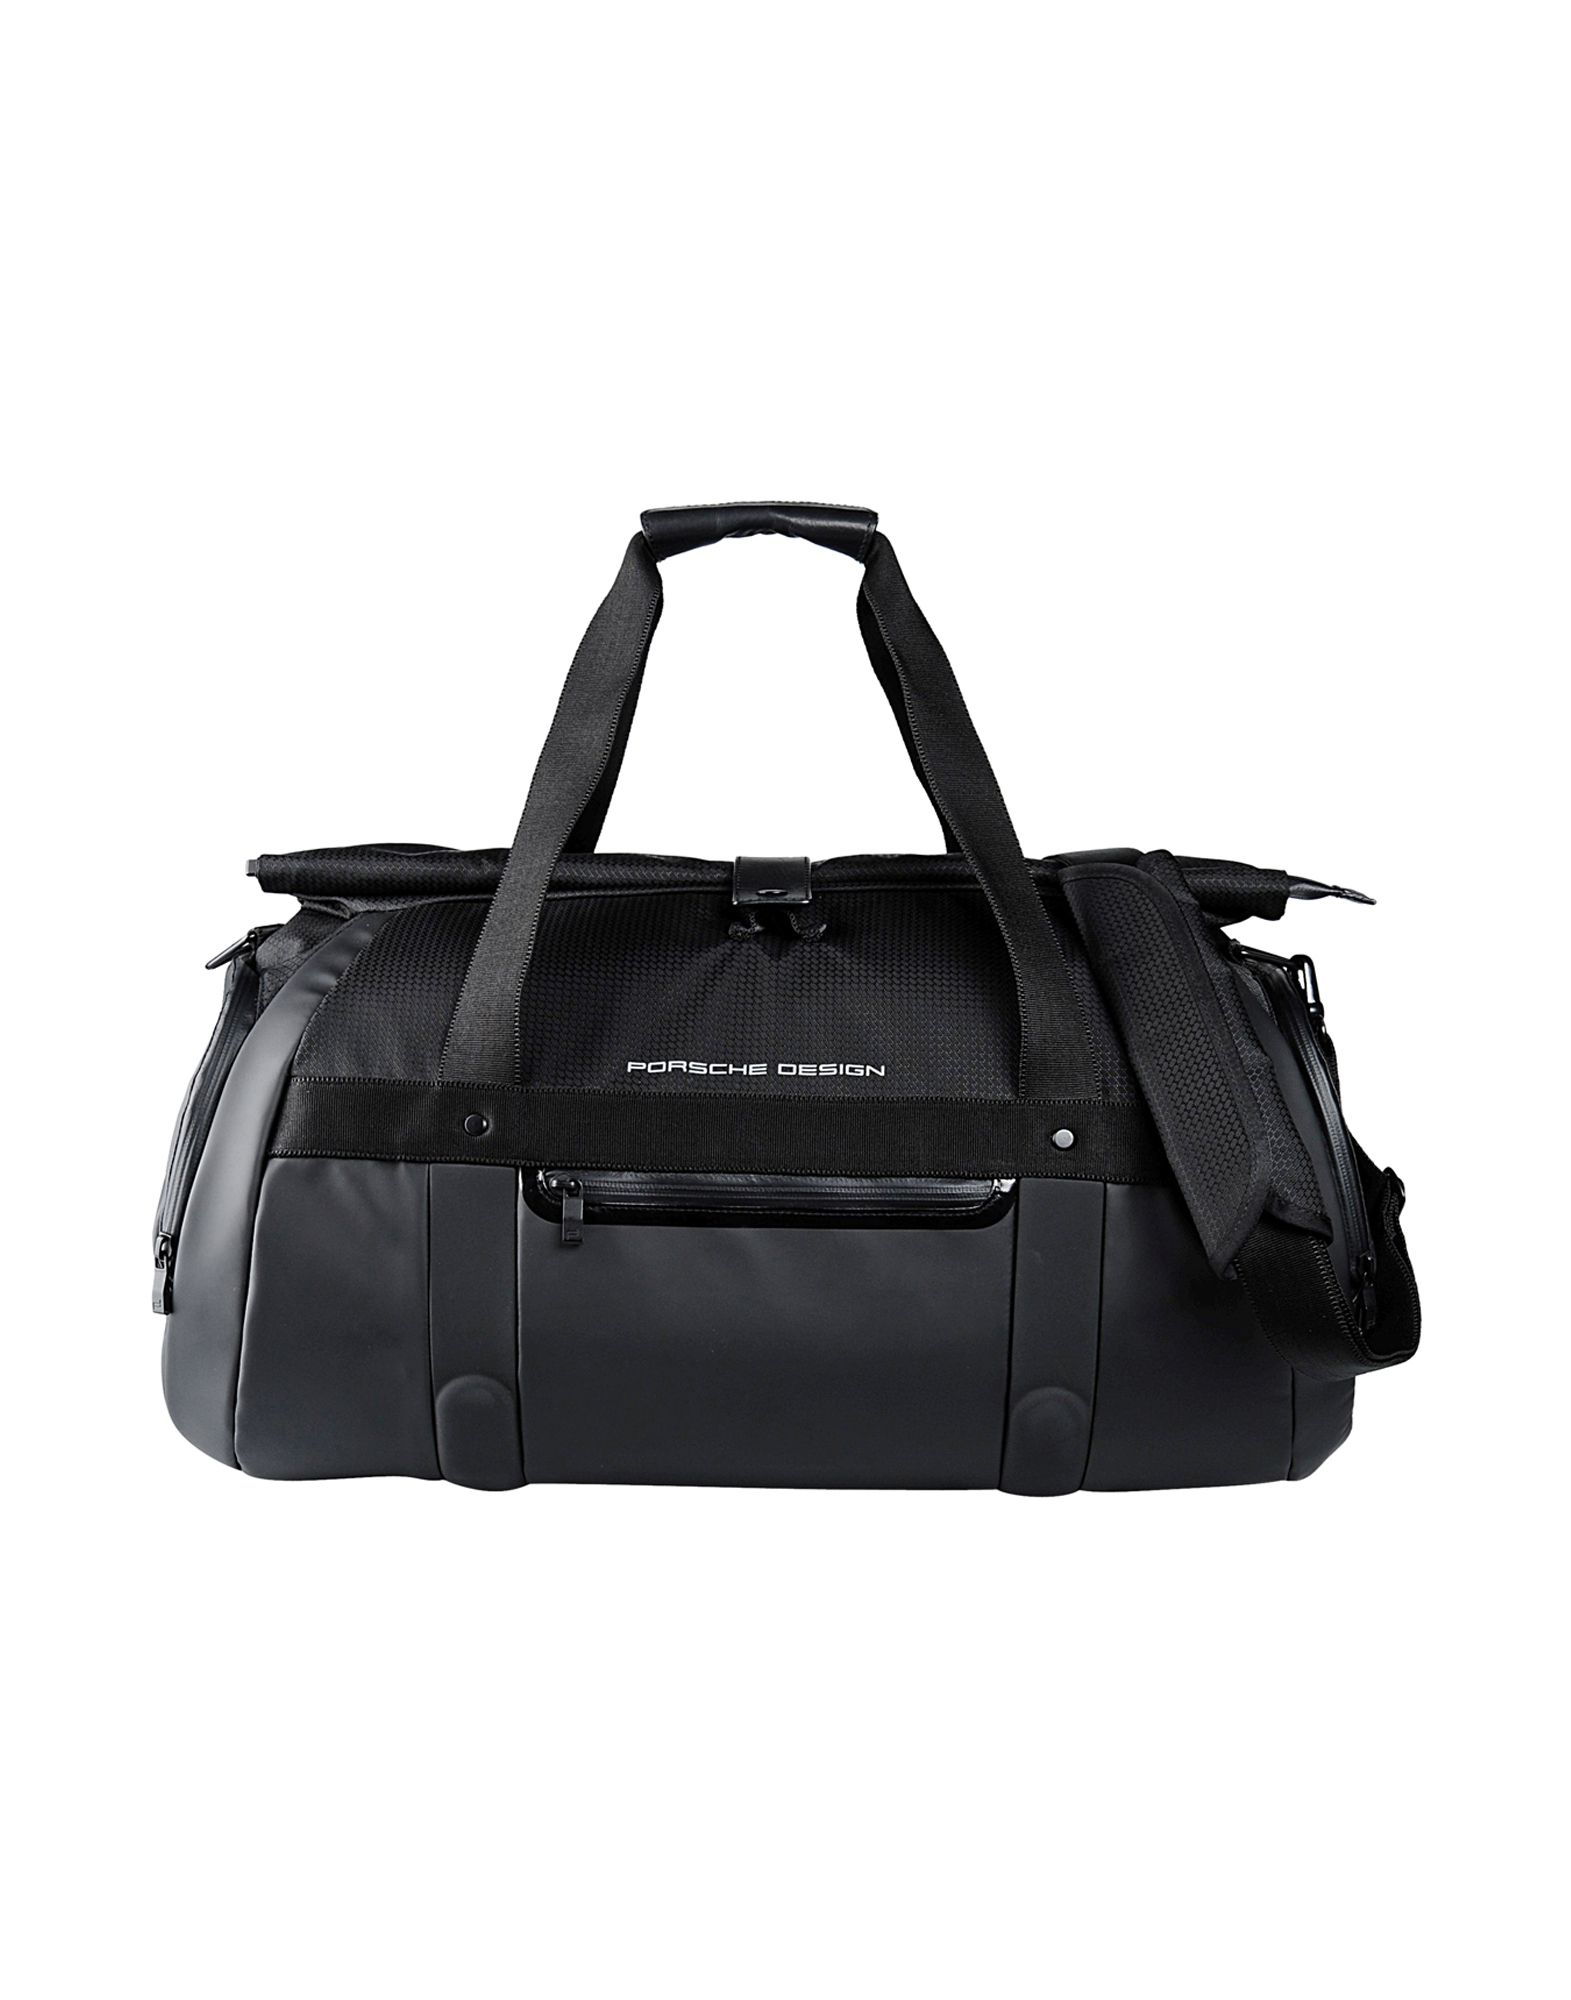 Lyst Porsche Design Travel Amp Duffel Bag In Black For Men